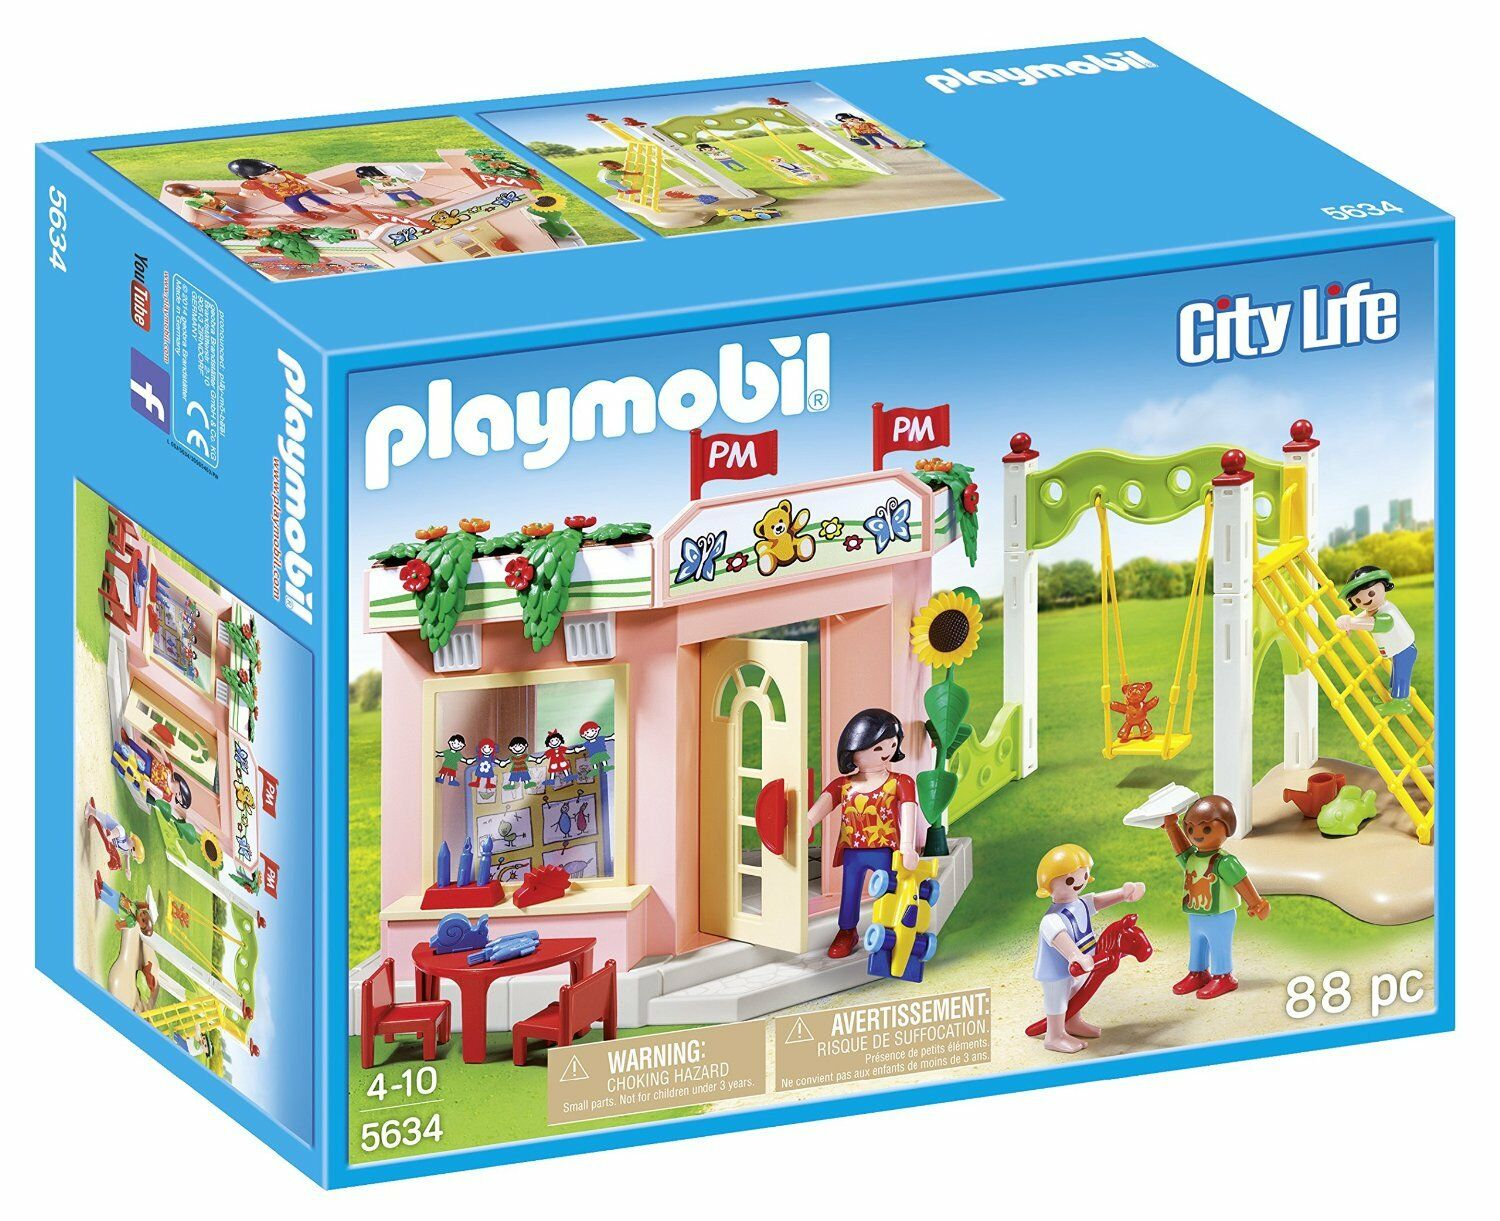 Playmobil City Life Preschool Playground Building Kit 5634 Ages 4+ Nuovo Toy Gift